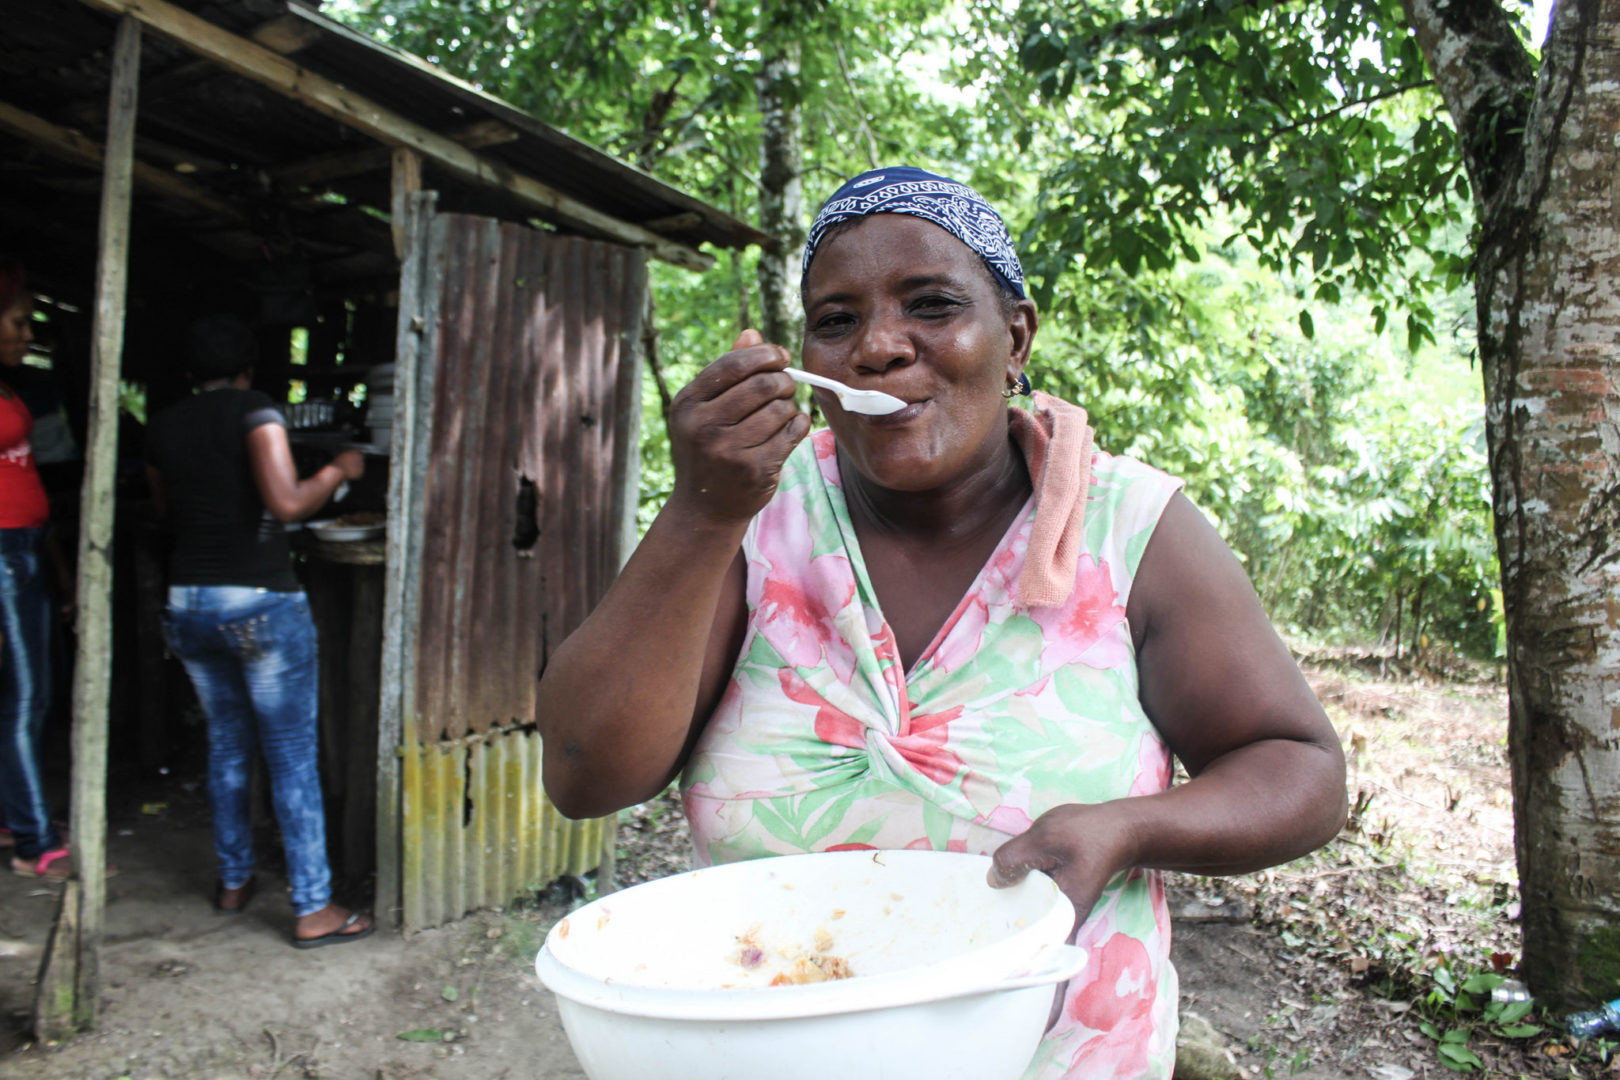 Maria samples some of the food she has prepared for the village.